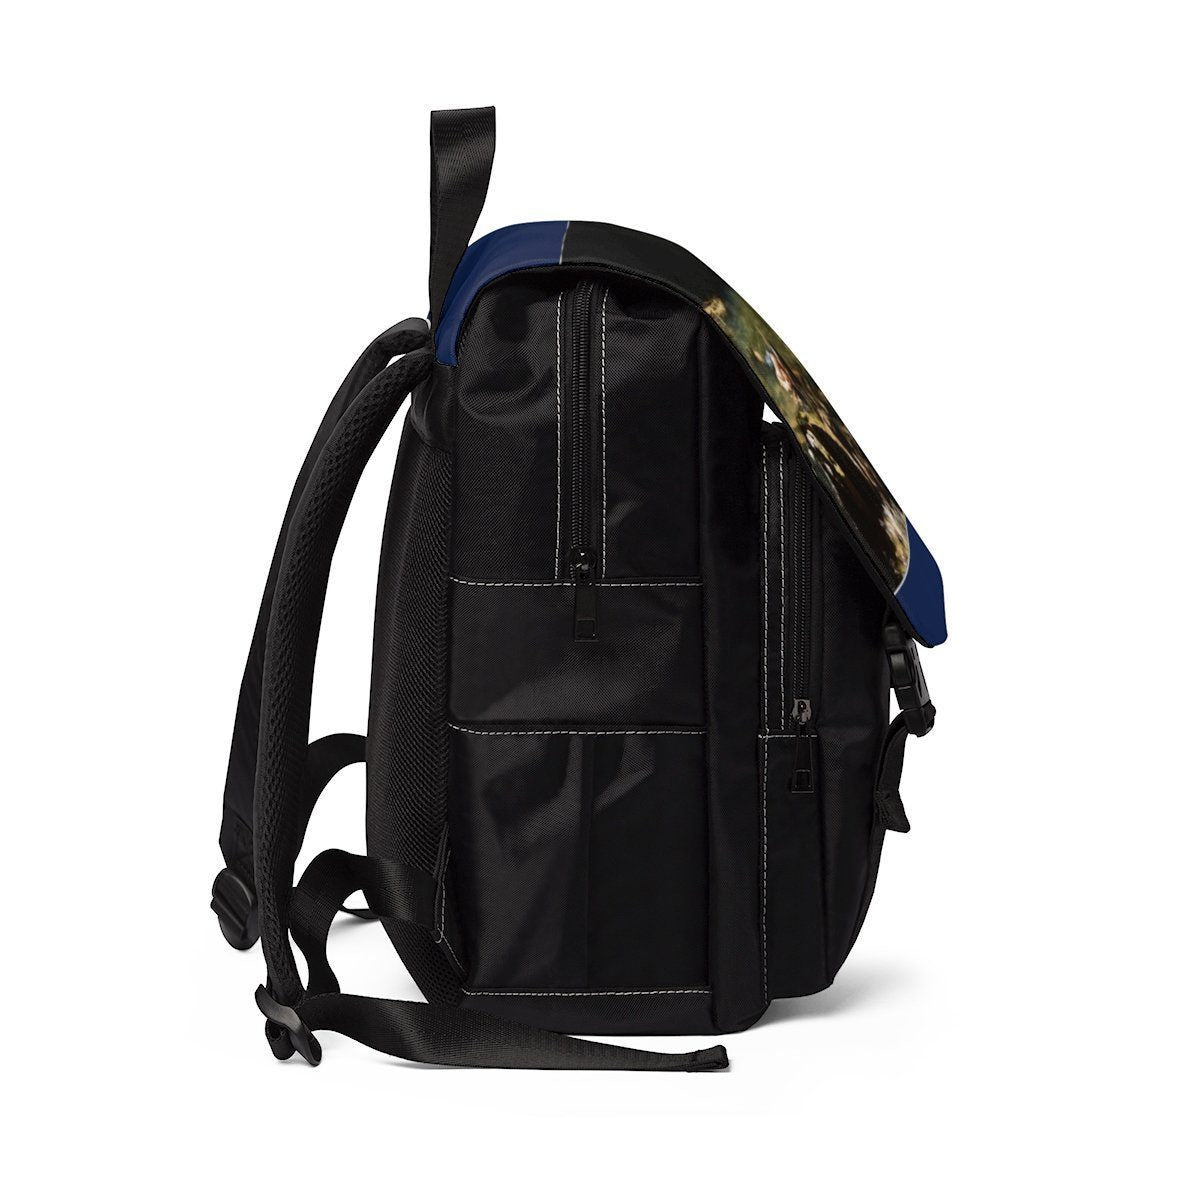 Unisex Casual Shoulder Backpack - Jose resting in pond after long hike - EYNF Bags Printify